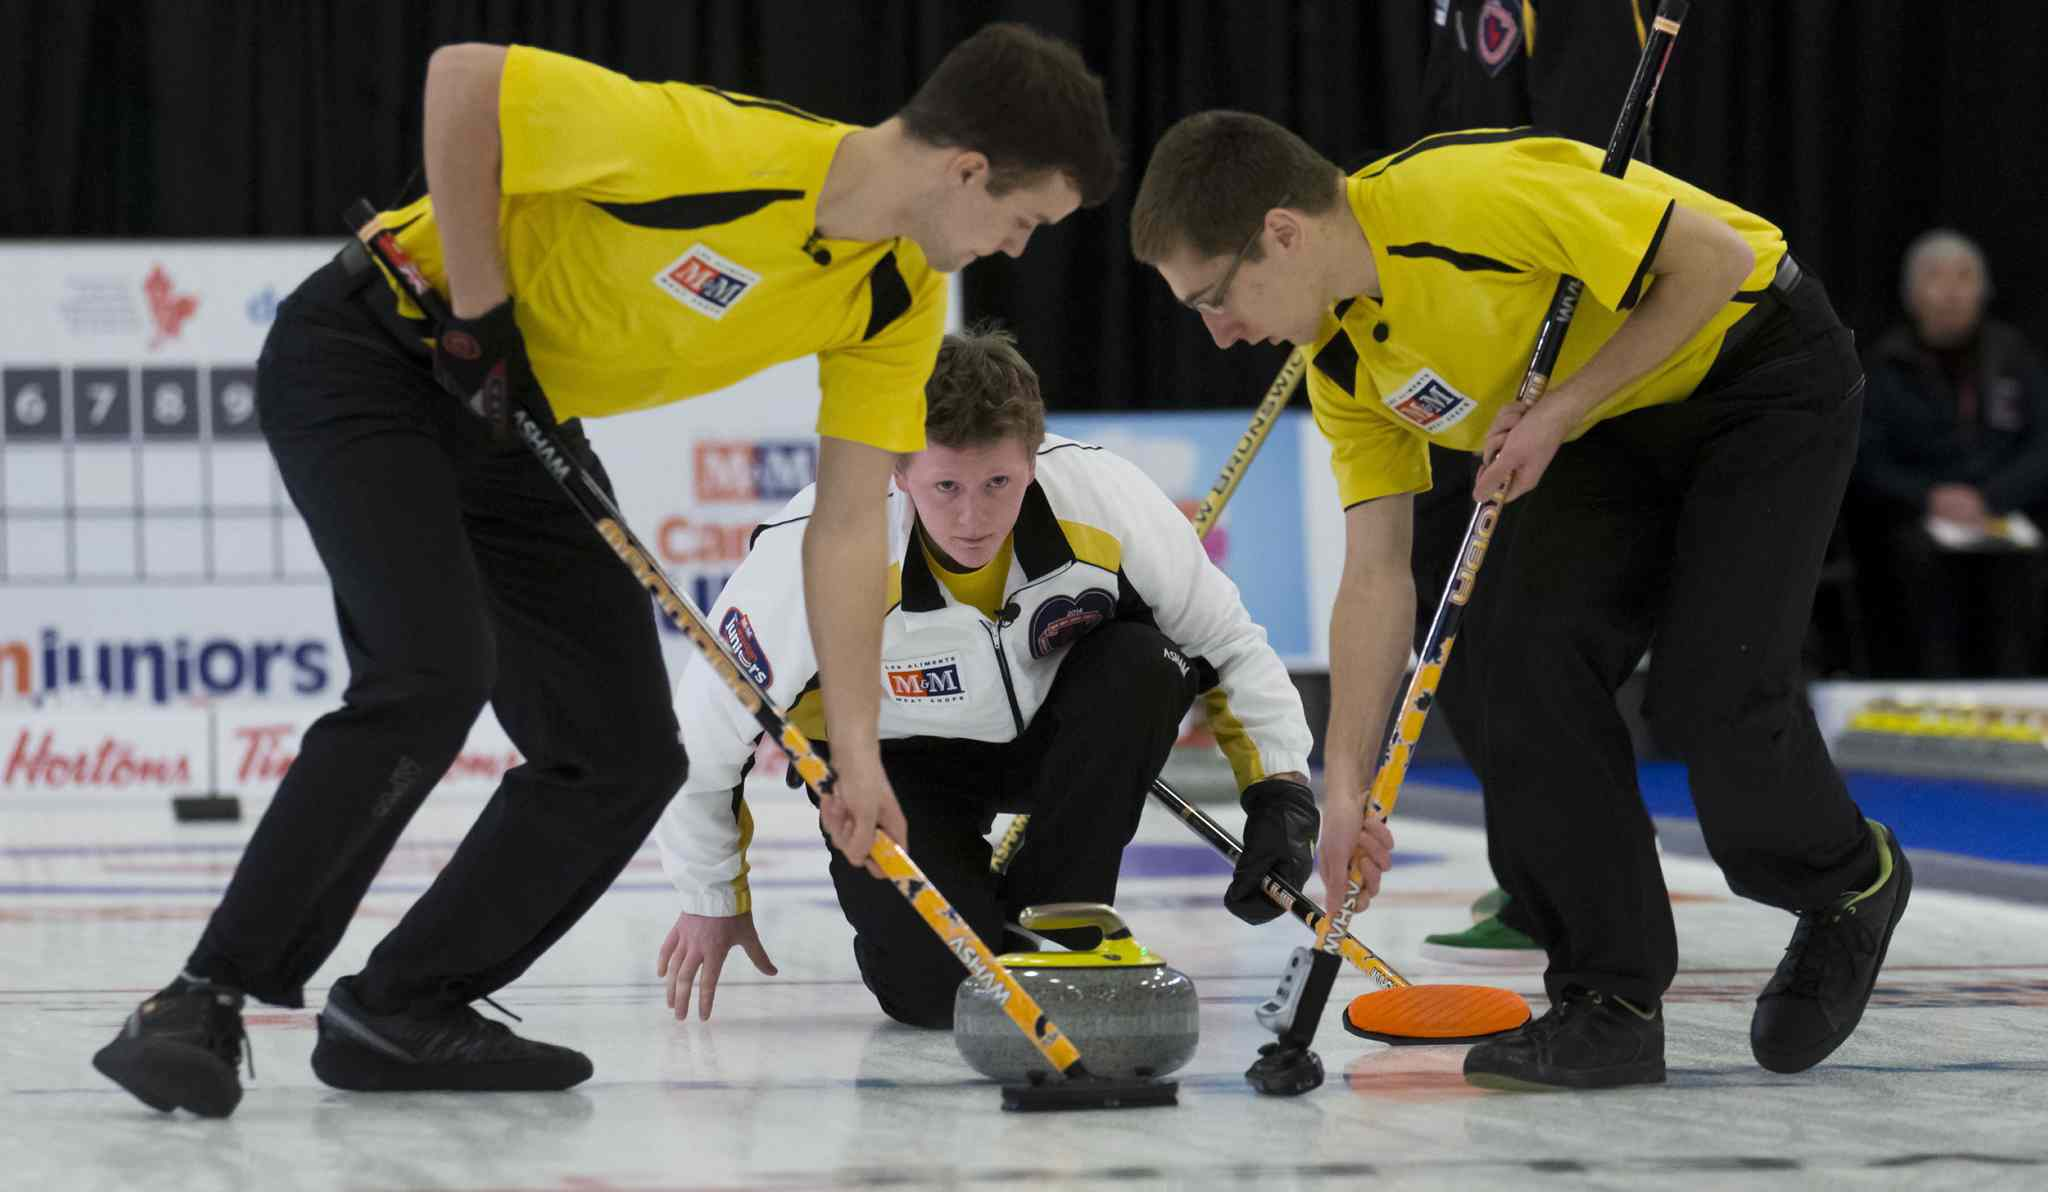 Different team, same result: Braden Calvert's squad upset the reigning Canadian champion to win the Manitoba title and is the new national junior champion.